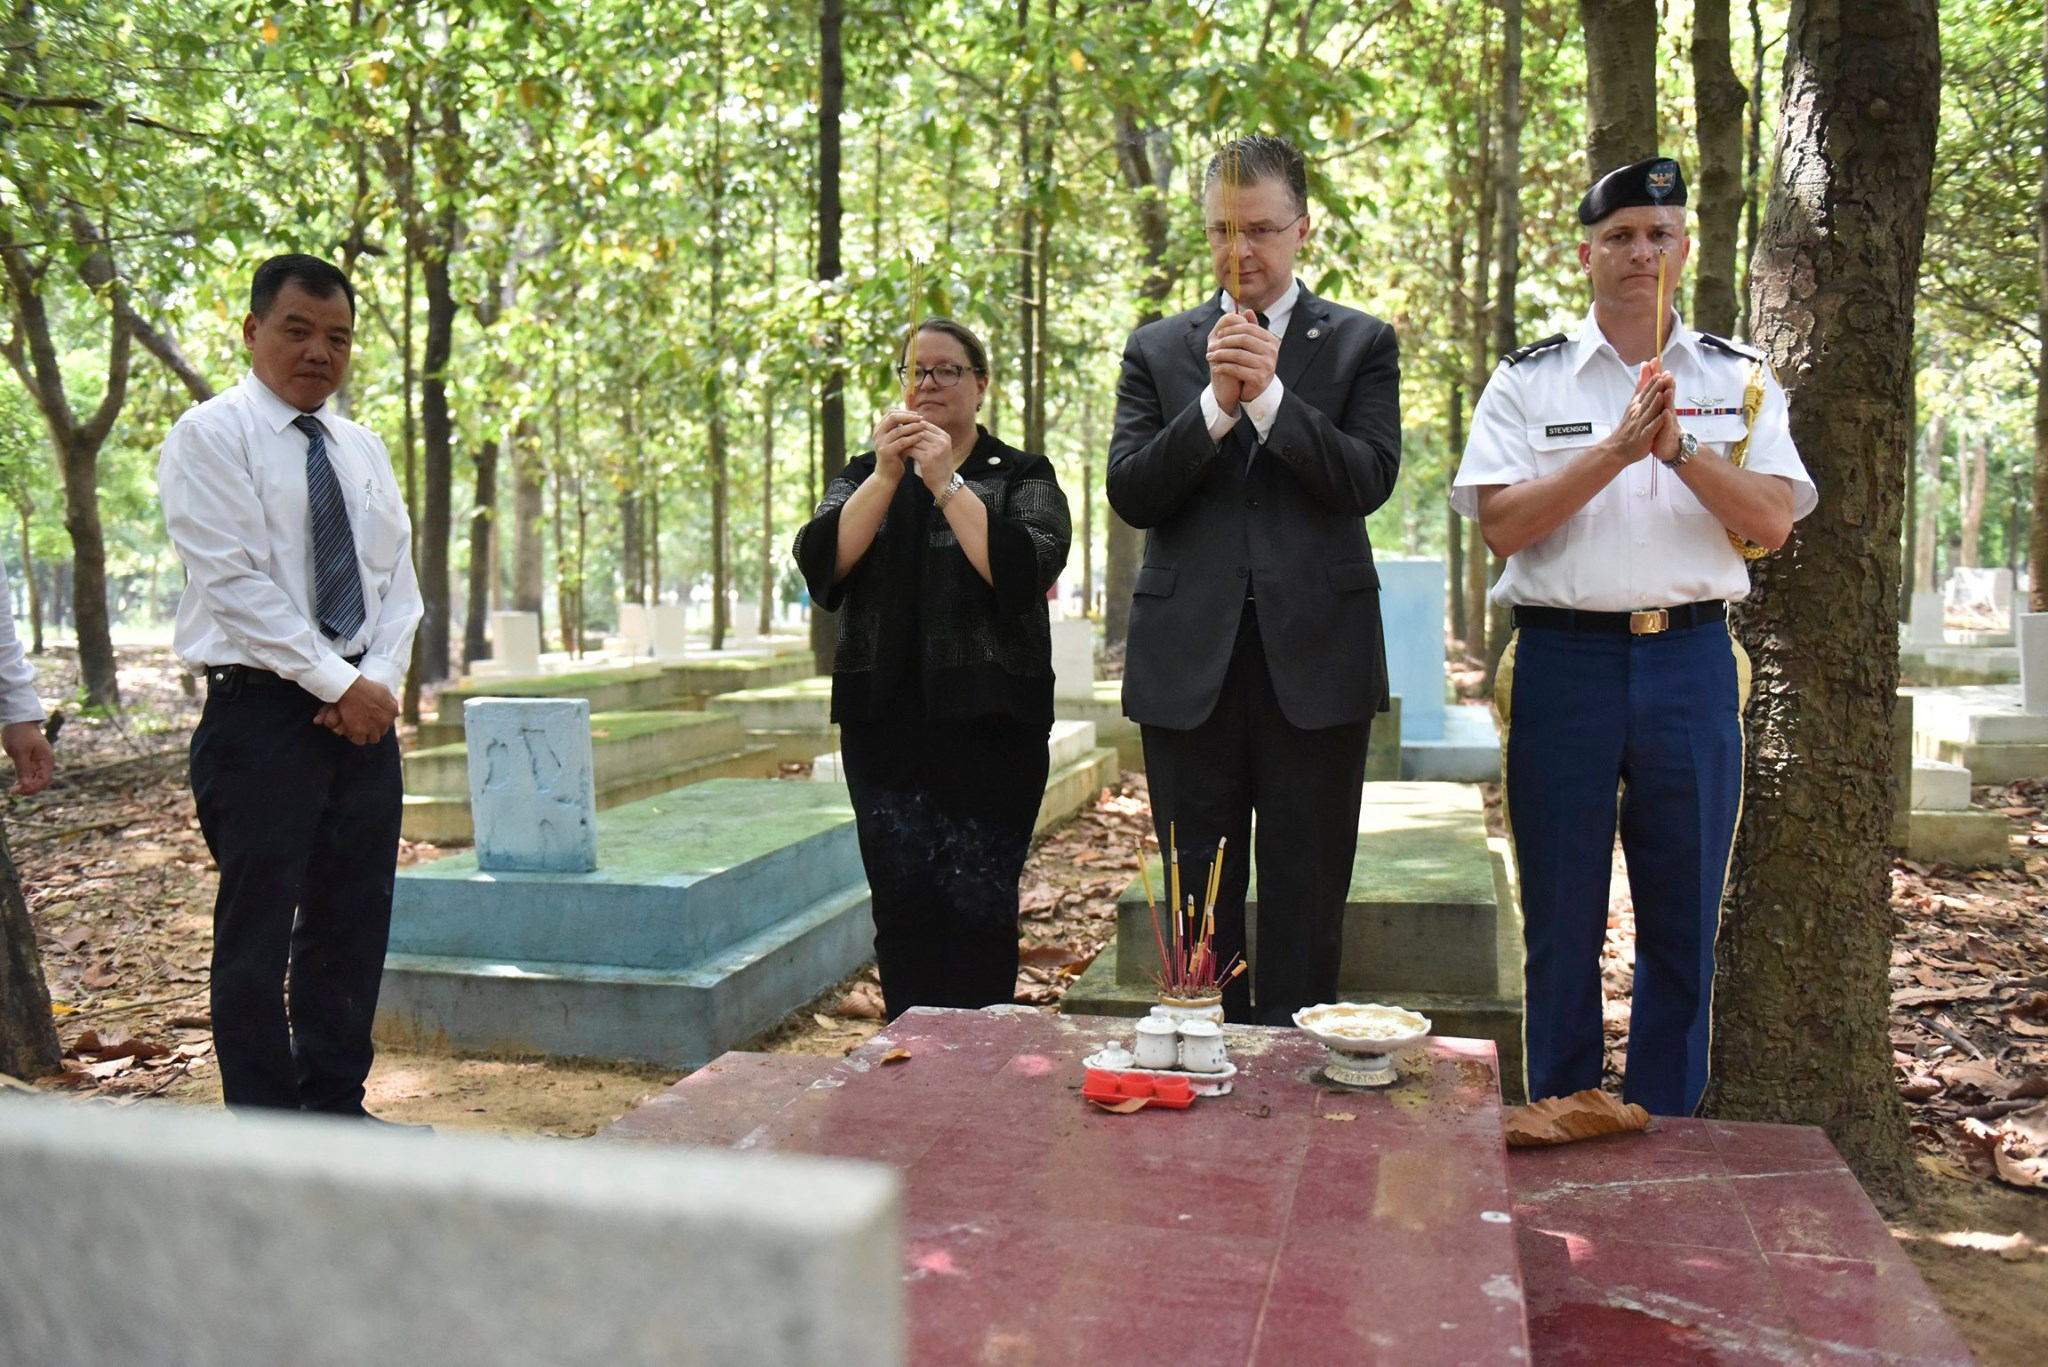 Marie Damour, Ambassador Daniel Kritenbrink, and U.S. Defense Attache Colonel Stevenson pay respects at Bien Hoa (also known as Binh An) Cemetery on June 21, 2020. Photo: US Consulate in Ho Chi Minh City